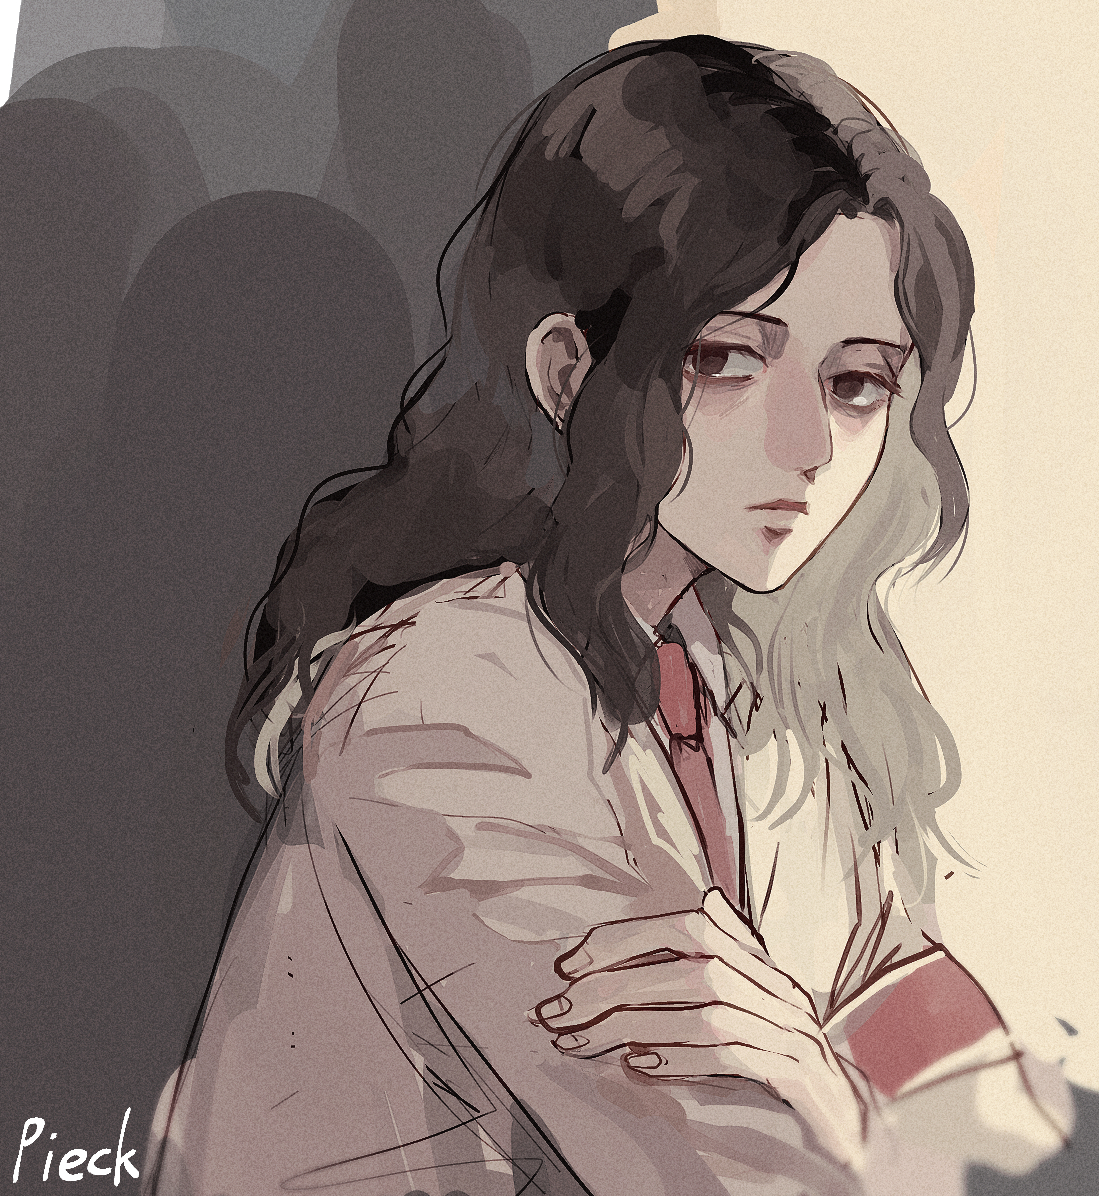 Ace Degenerate Pieck.Finger.full.3176888